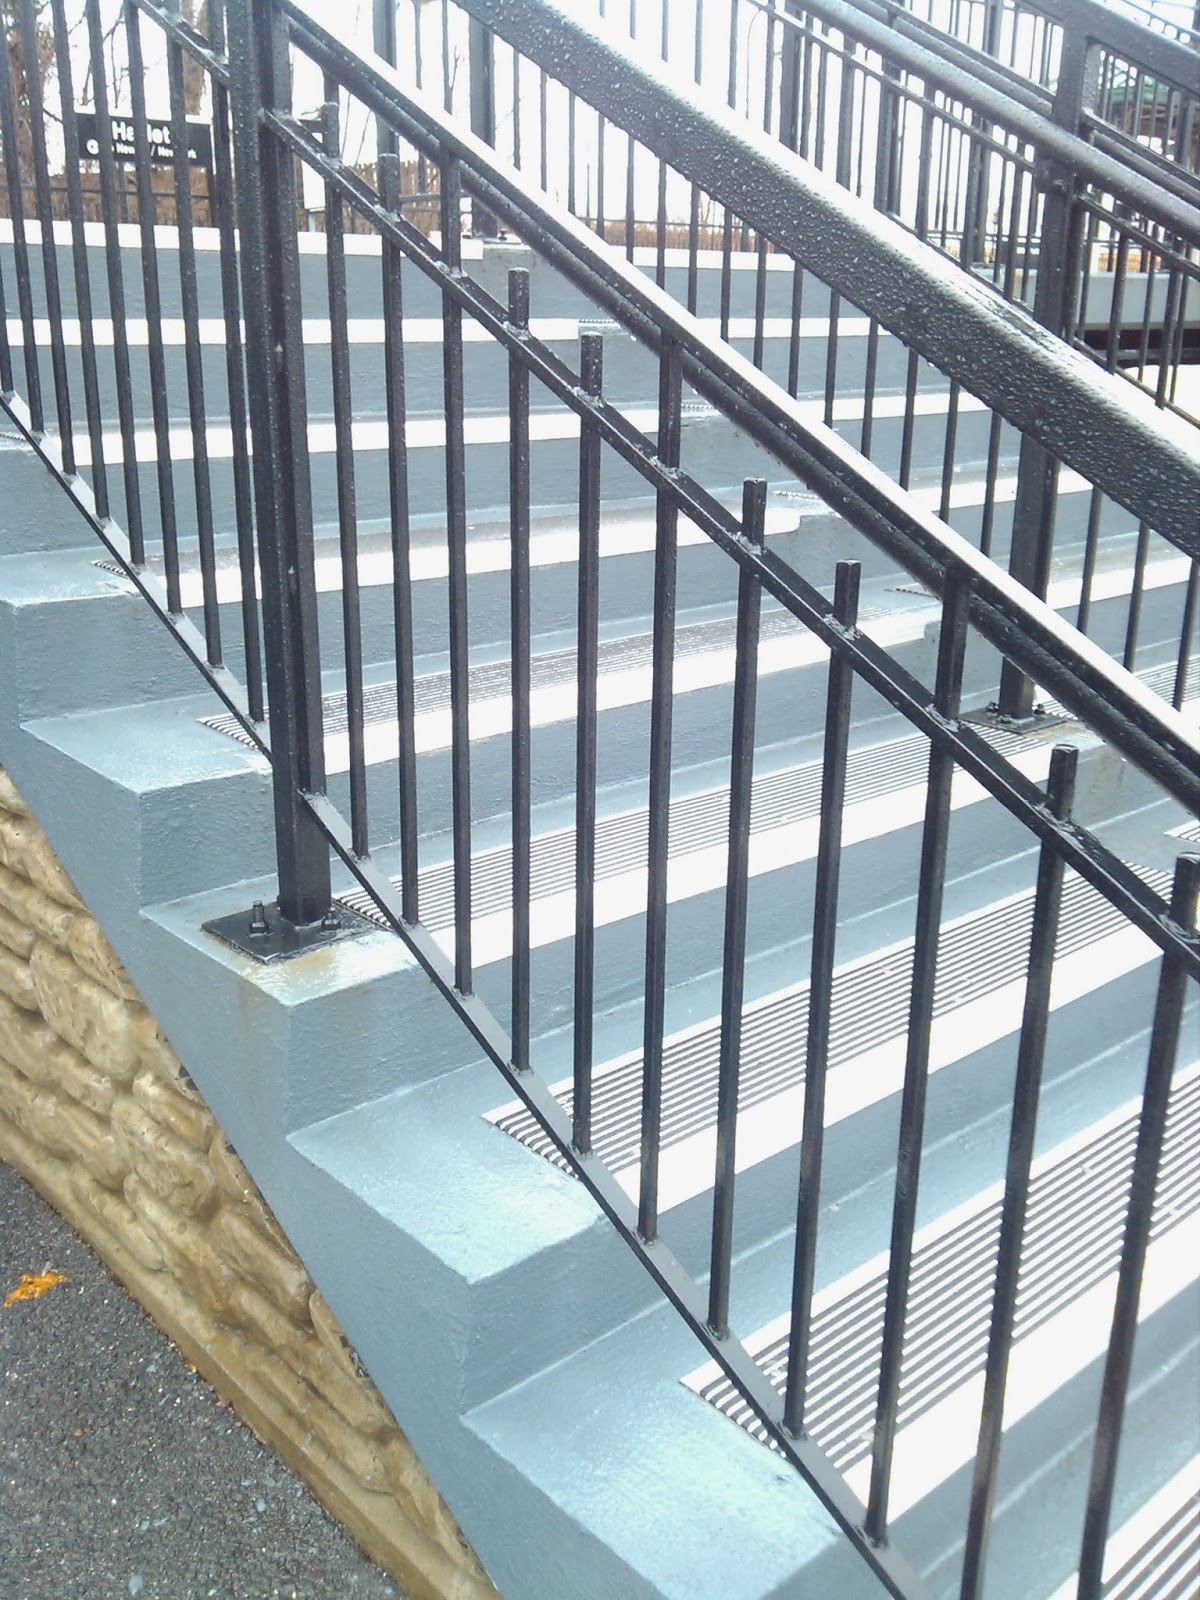 Non Slip Stair Treads NJ And NYC | Non Slip Stair Covers, Highest Rating.